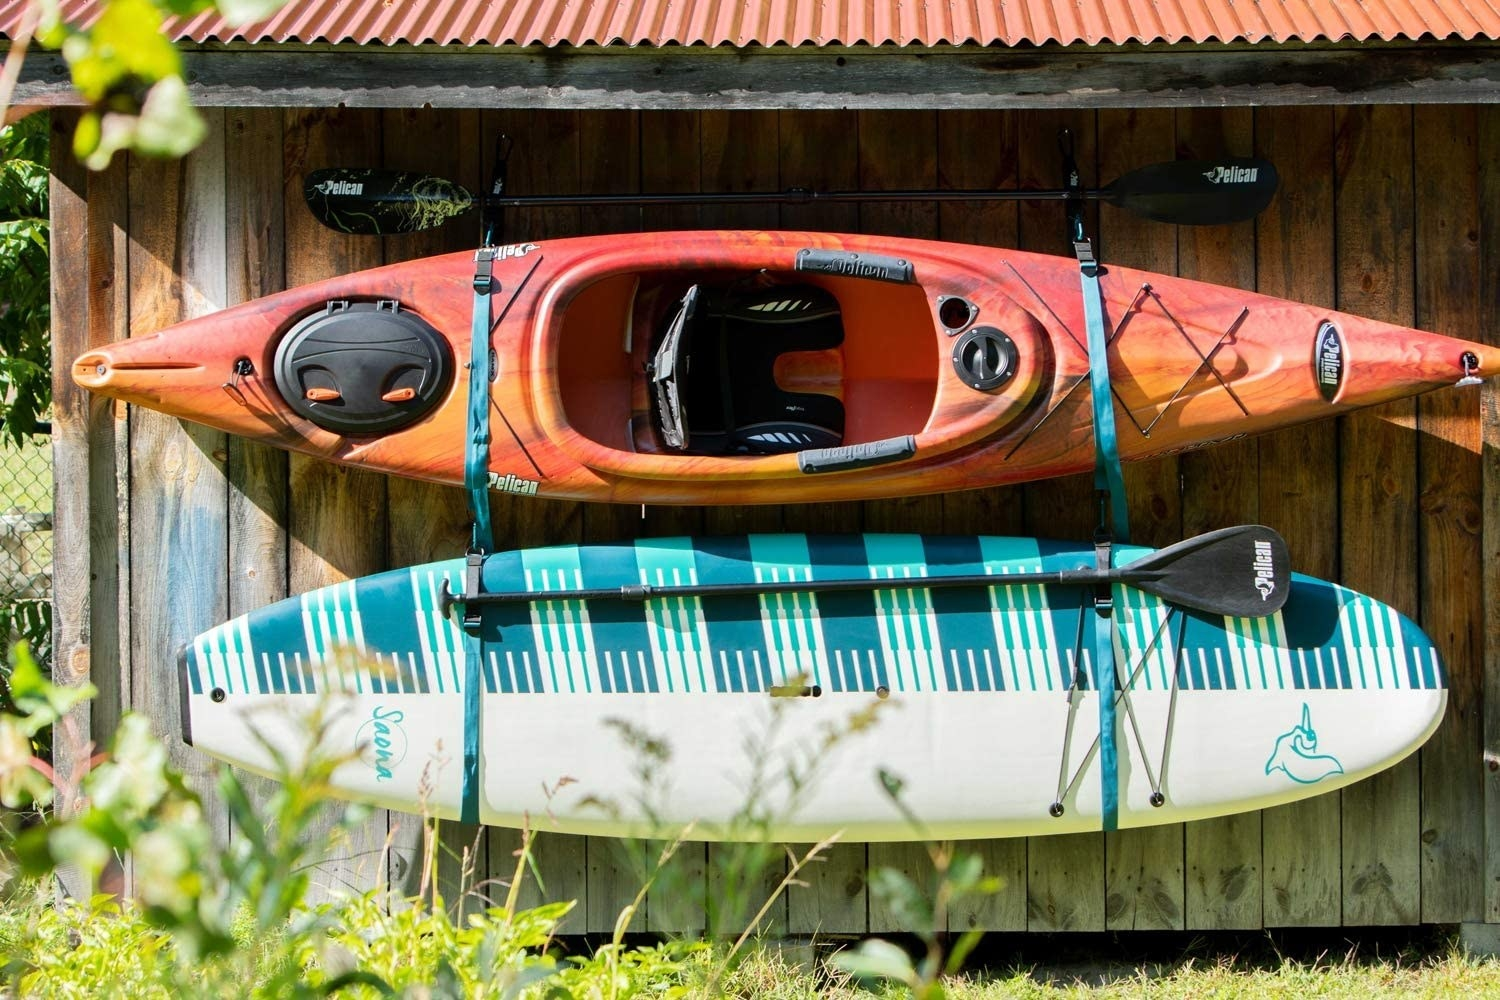 A canoe and a paddle board in the straps